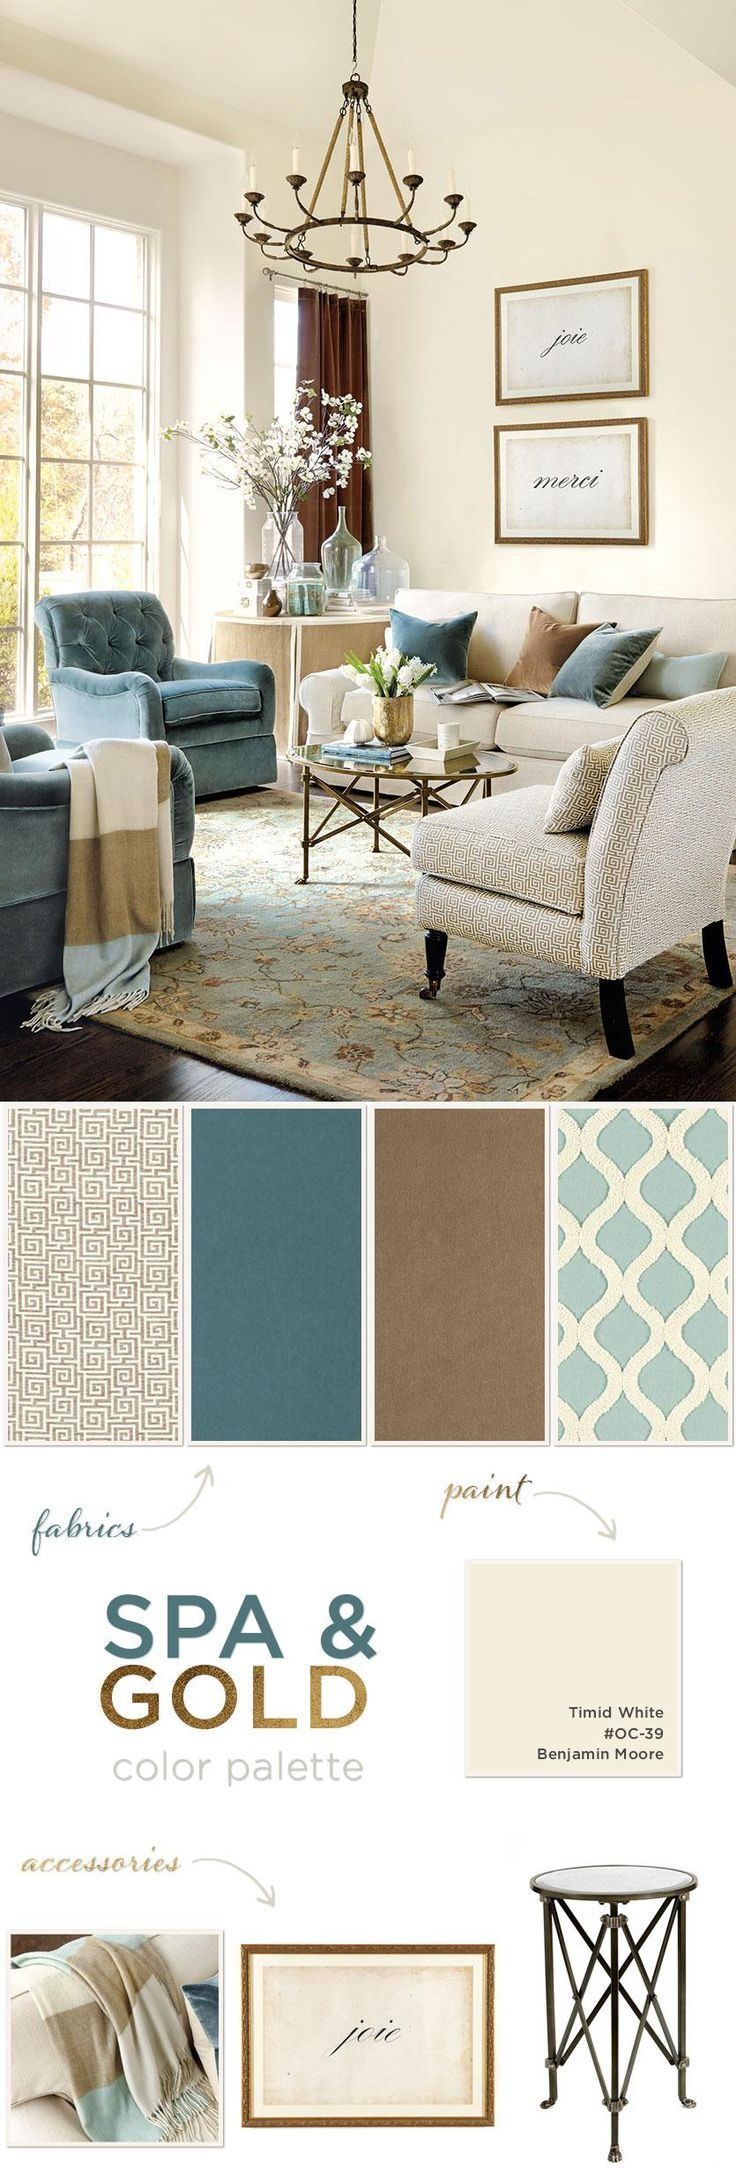 25 Best Ideas About Living Room Colors On Pinterest Living Room